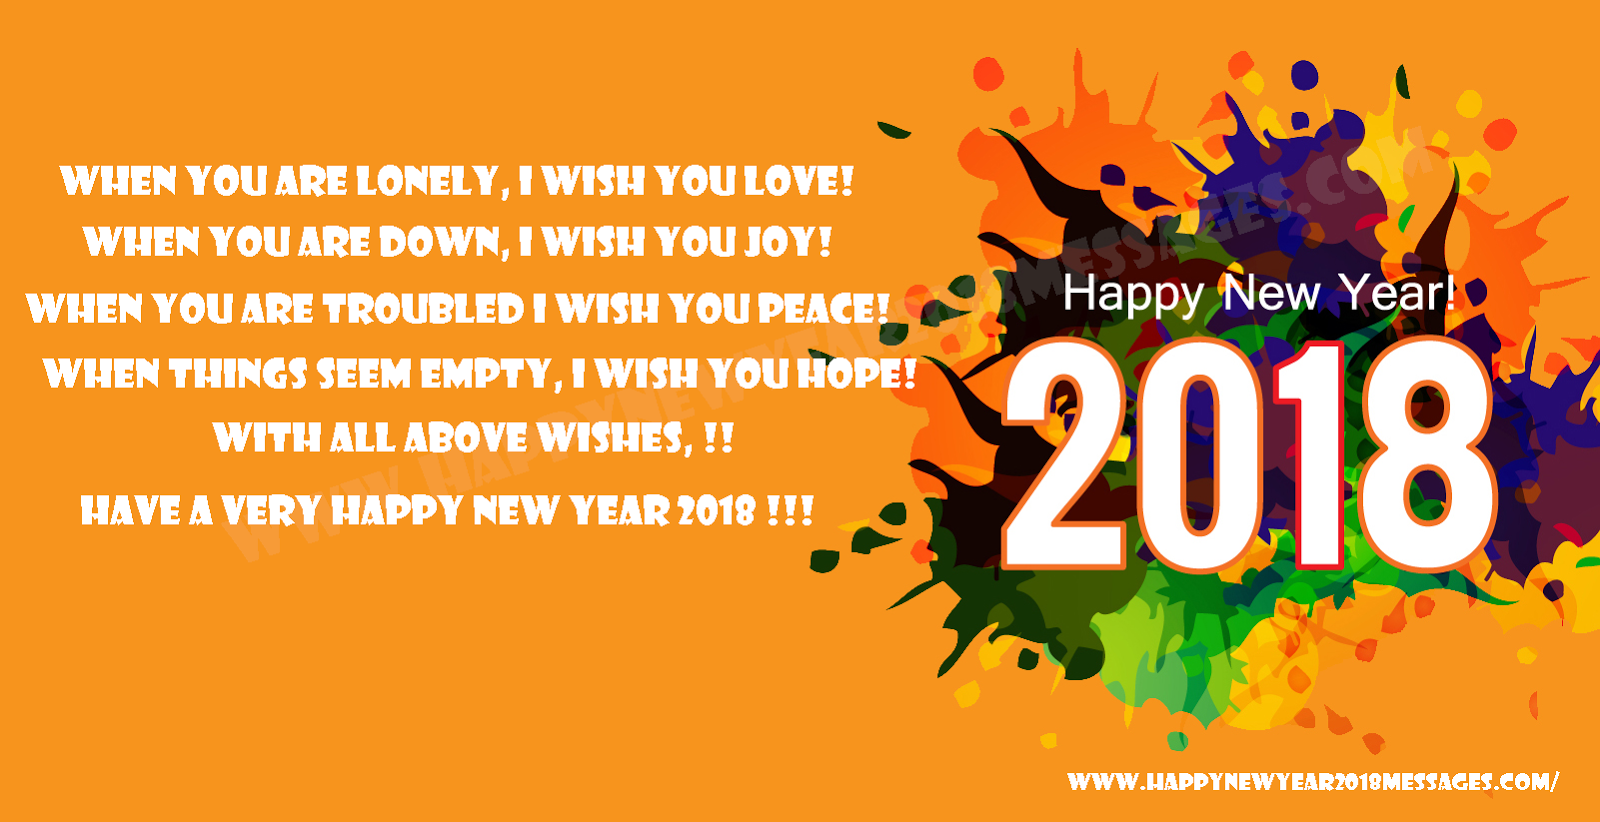 Happy New Year Story, Happy New Year 2018 Story, Happy New Year Wishes 2018